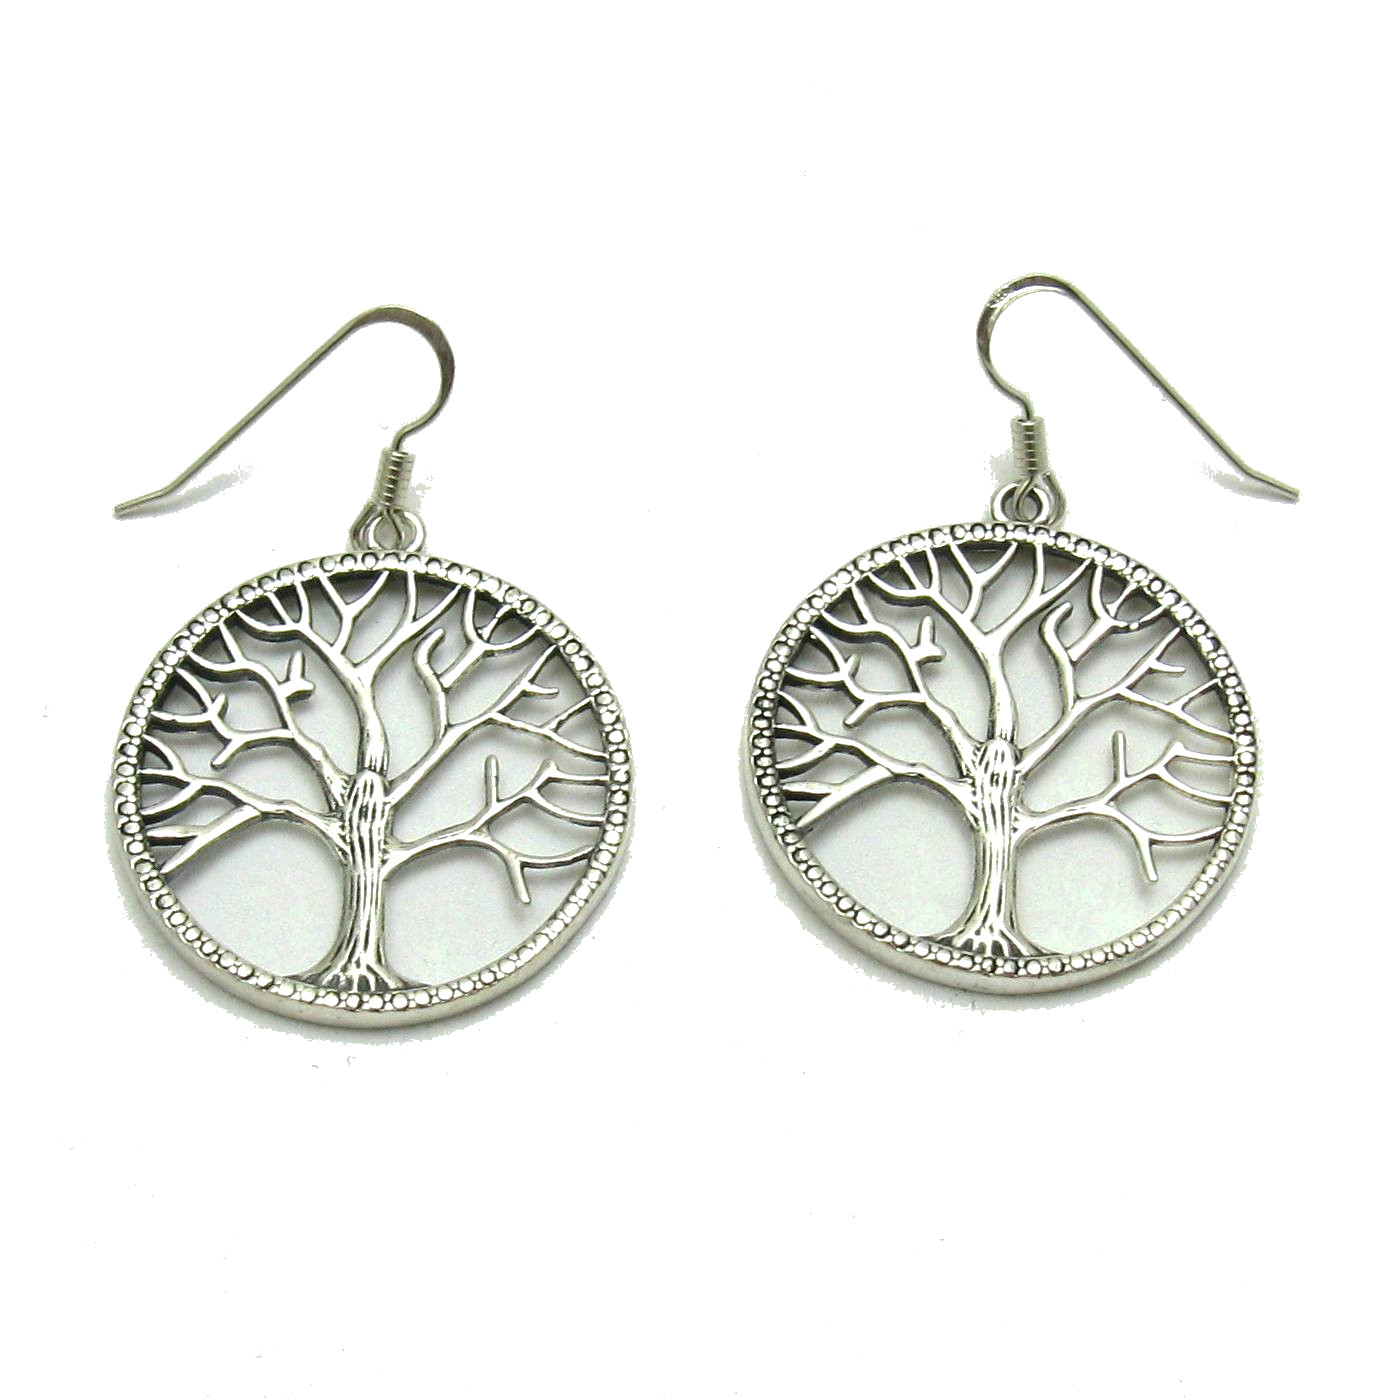 Silver earrings - E000686